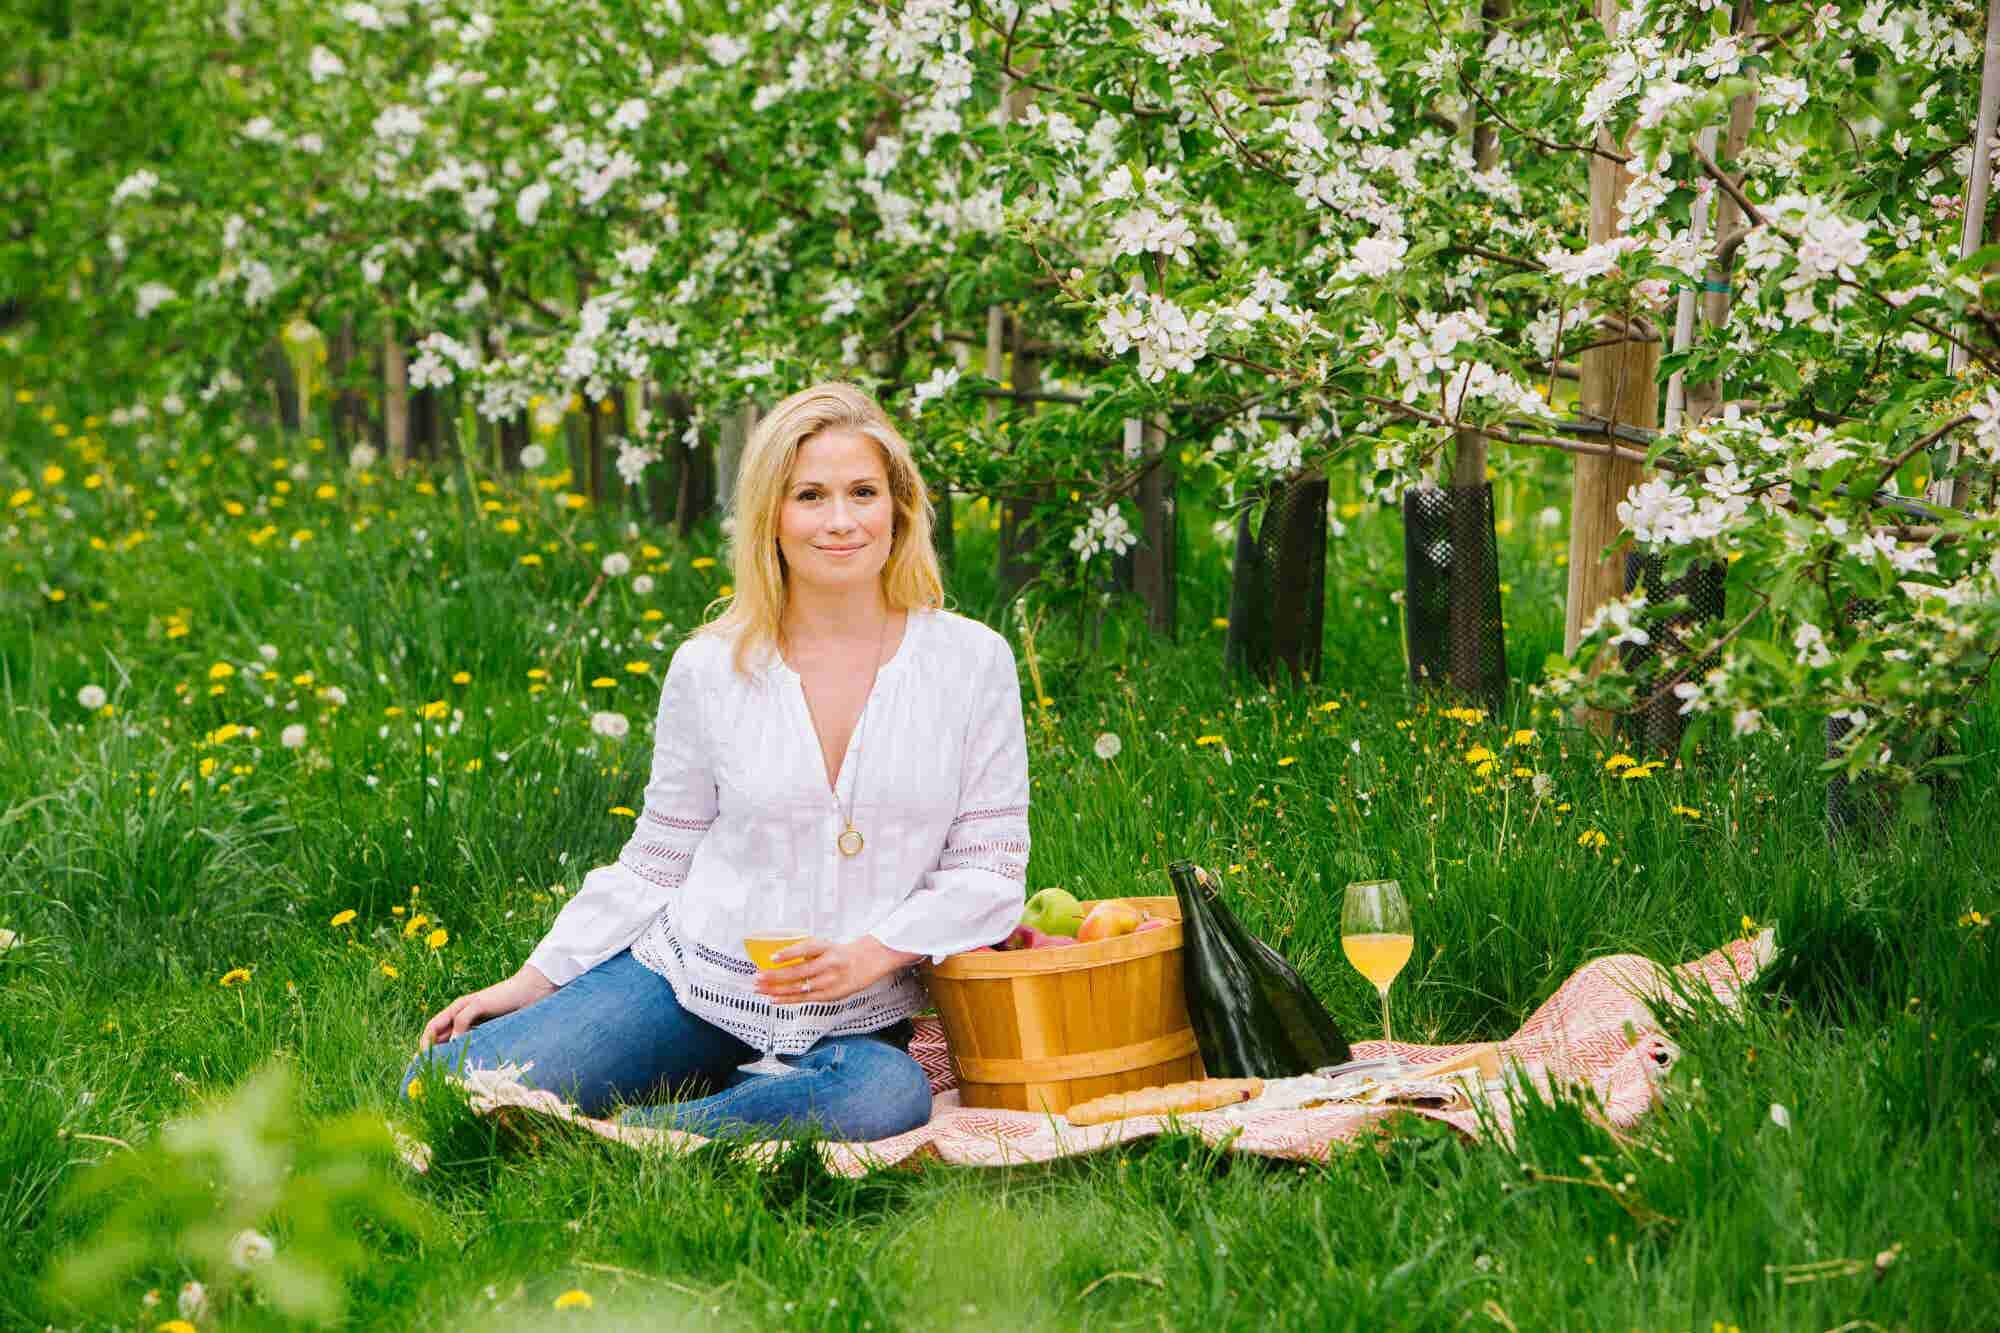 From Beauty Exec to Founder of Hard-Cider Marketplace, This Entreprene...